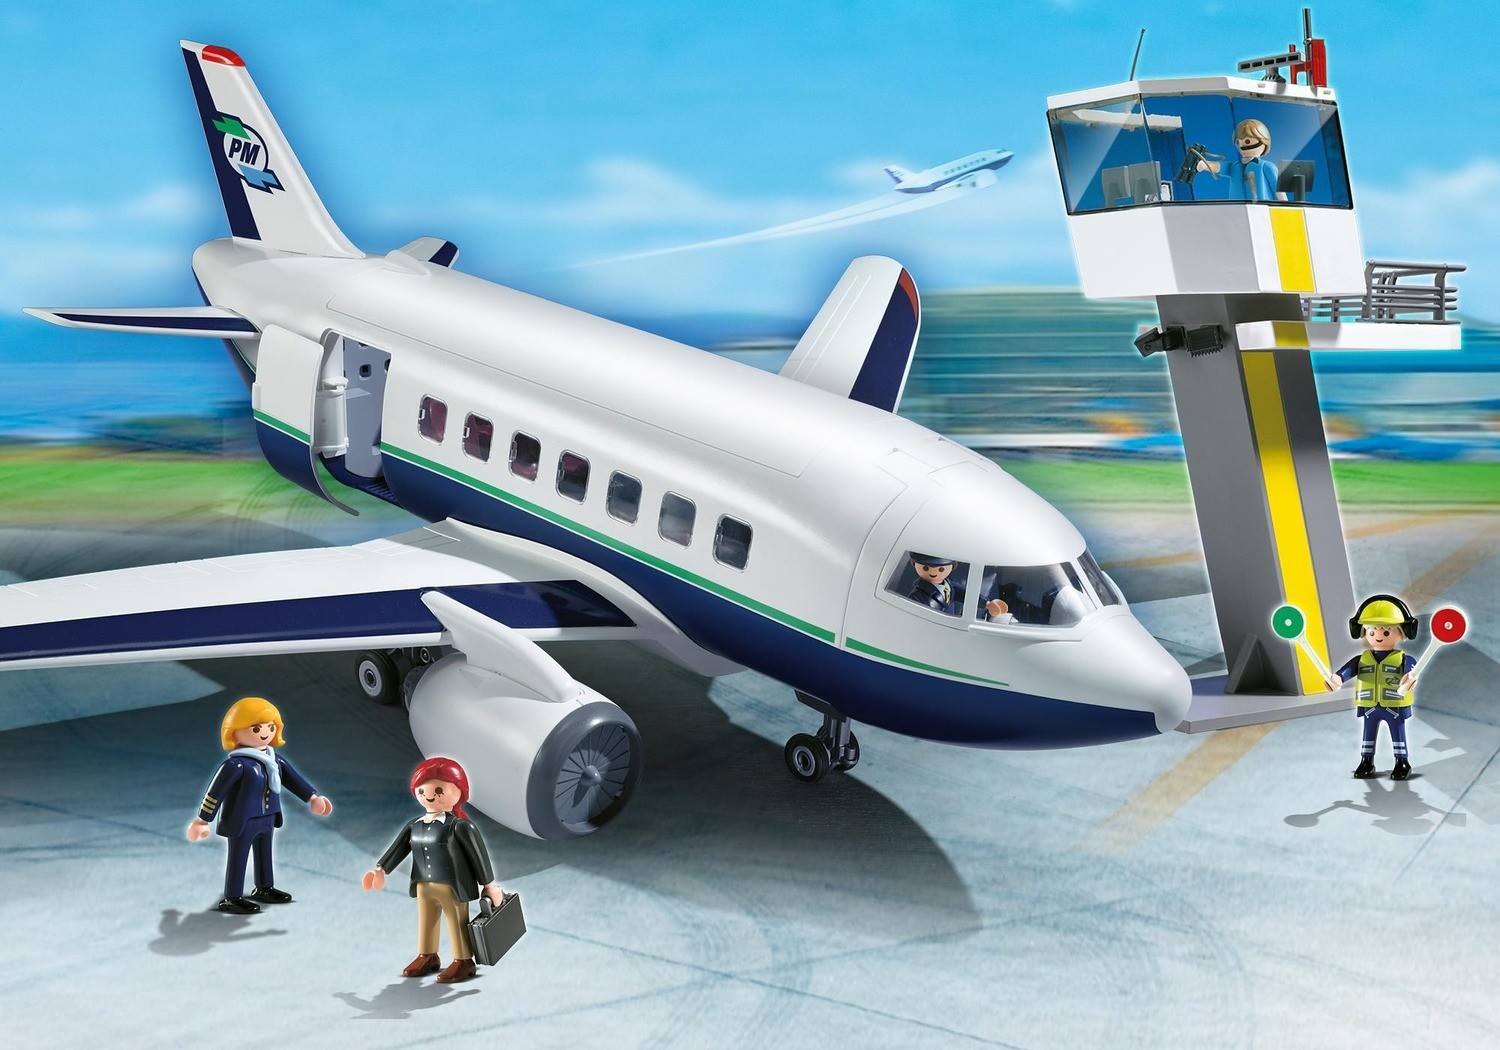 cargo and passenger aircraft playmobil airport planes 5261